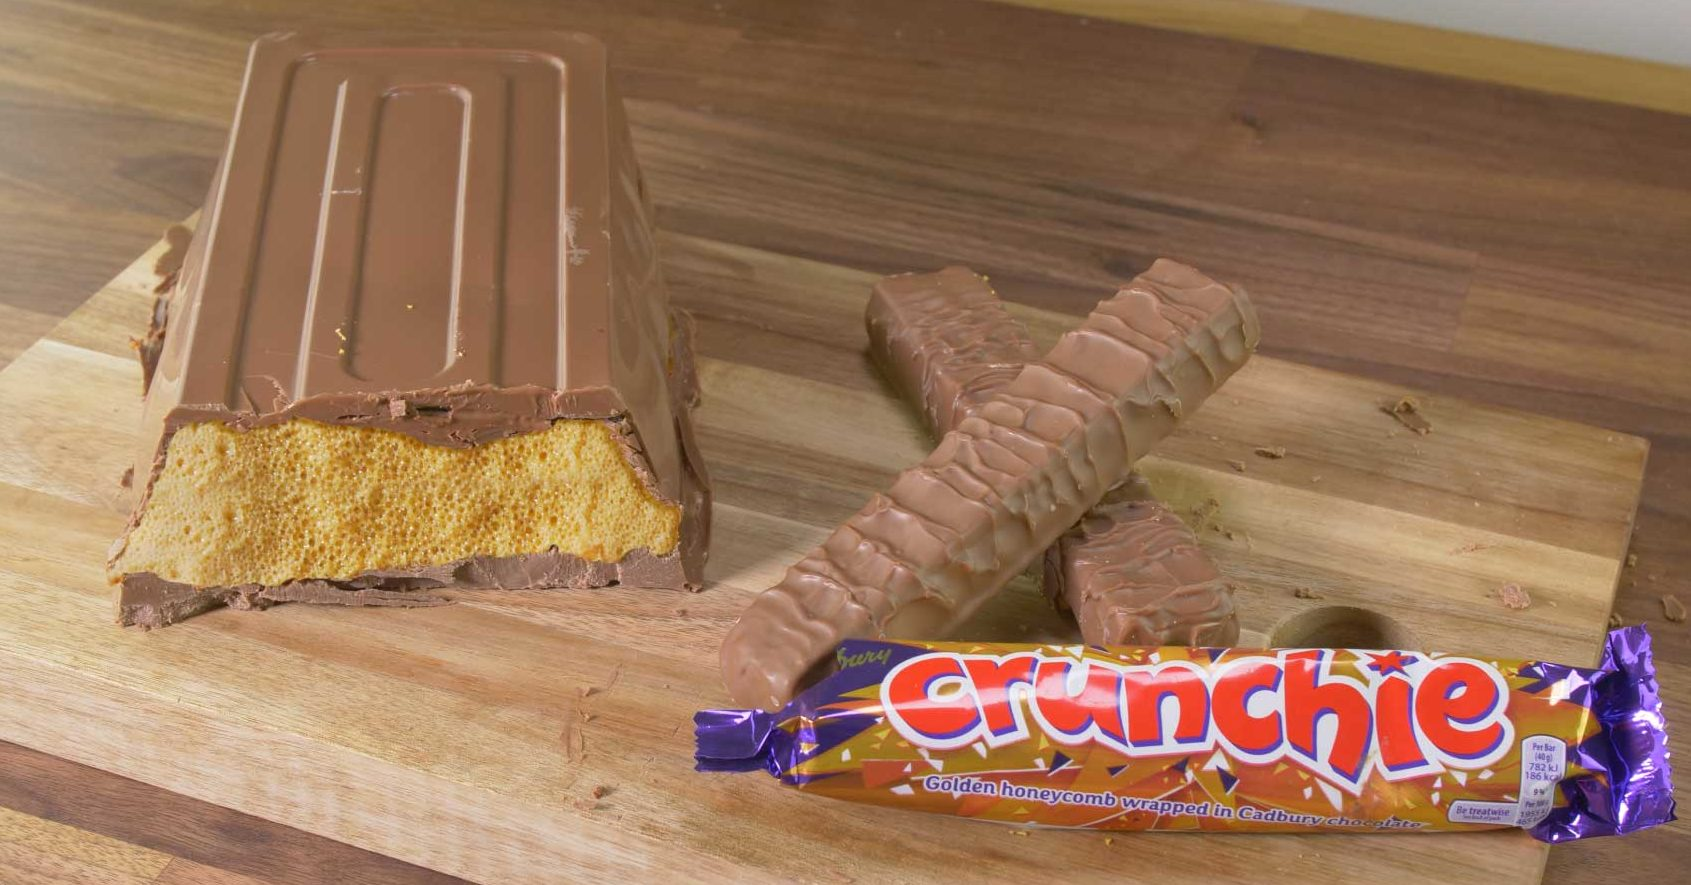 B&M unveils its Giant Crunchie Bar and it's the ultimate lockdown treat